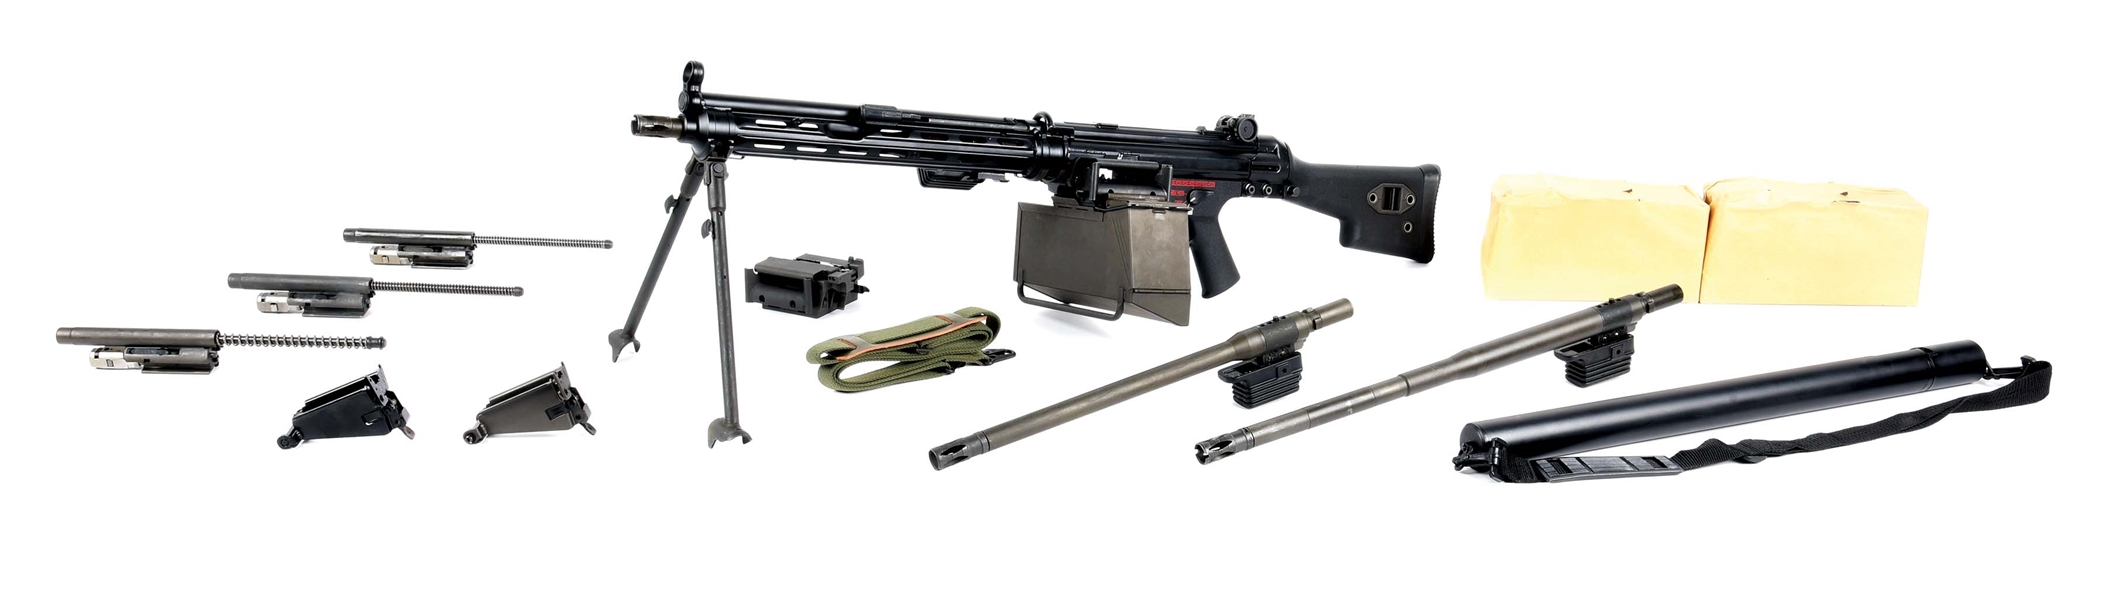 (N) H&K MODEL 21E MACHINE GUN WITH ACCESSORIES (FULLY TRANSFERABLE).